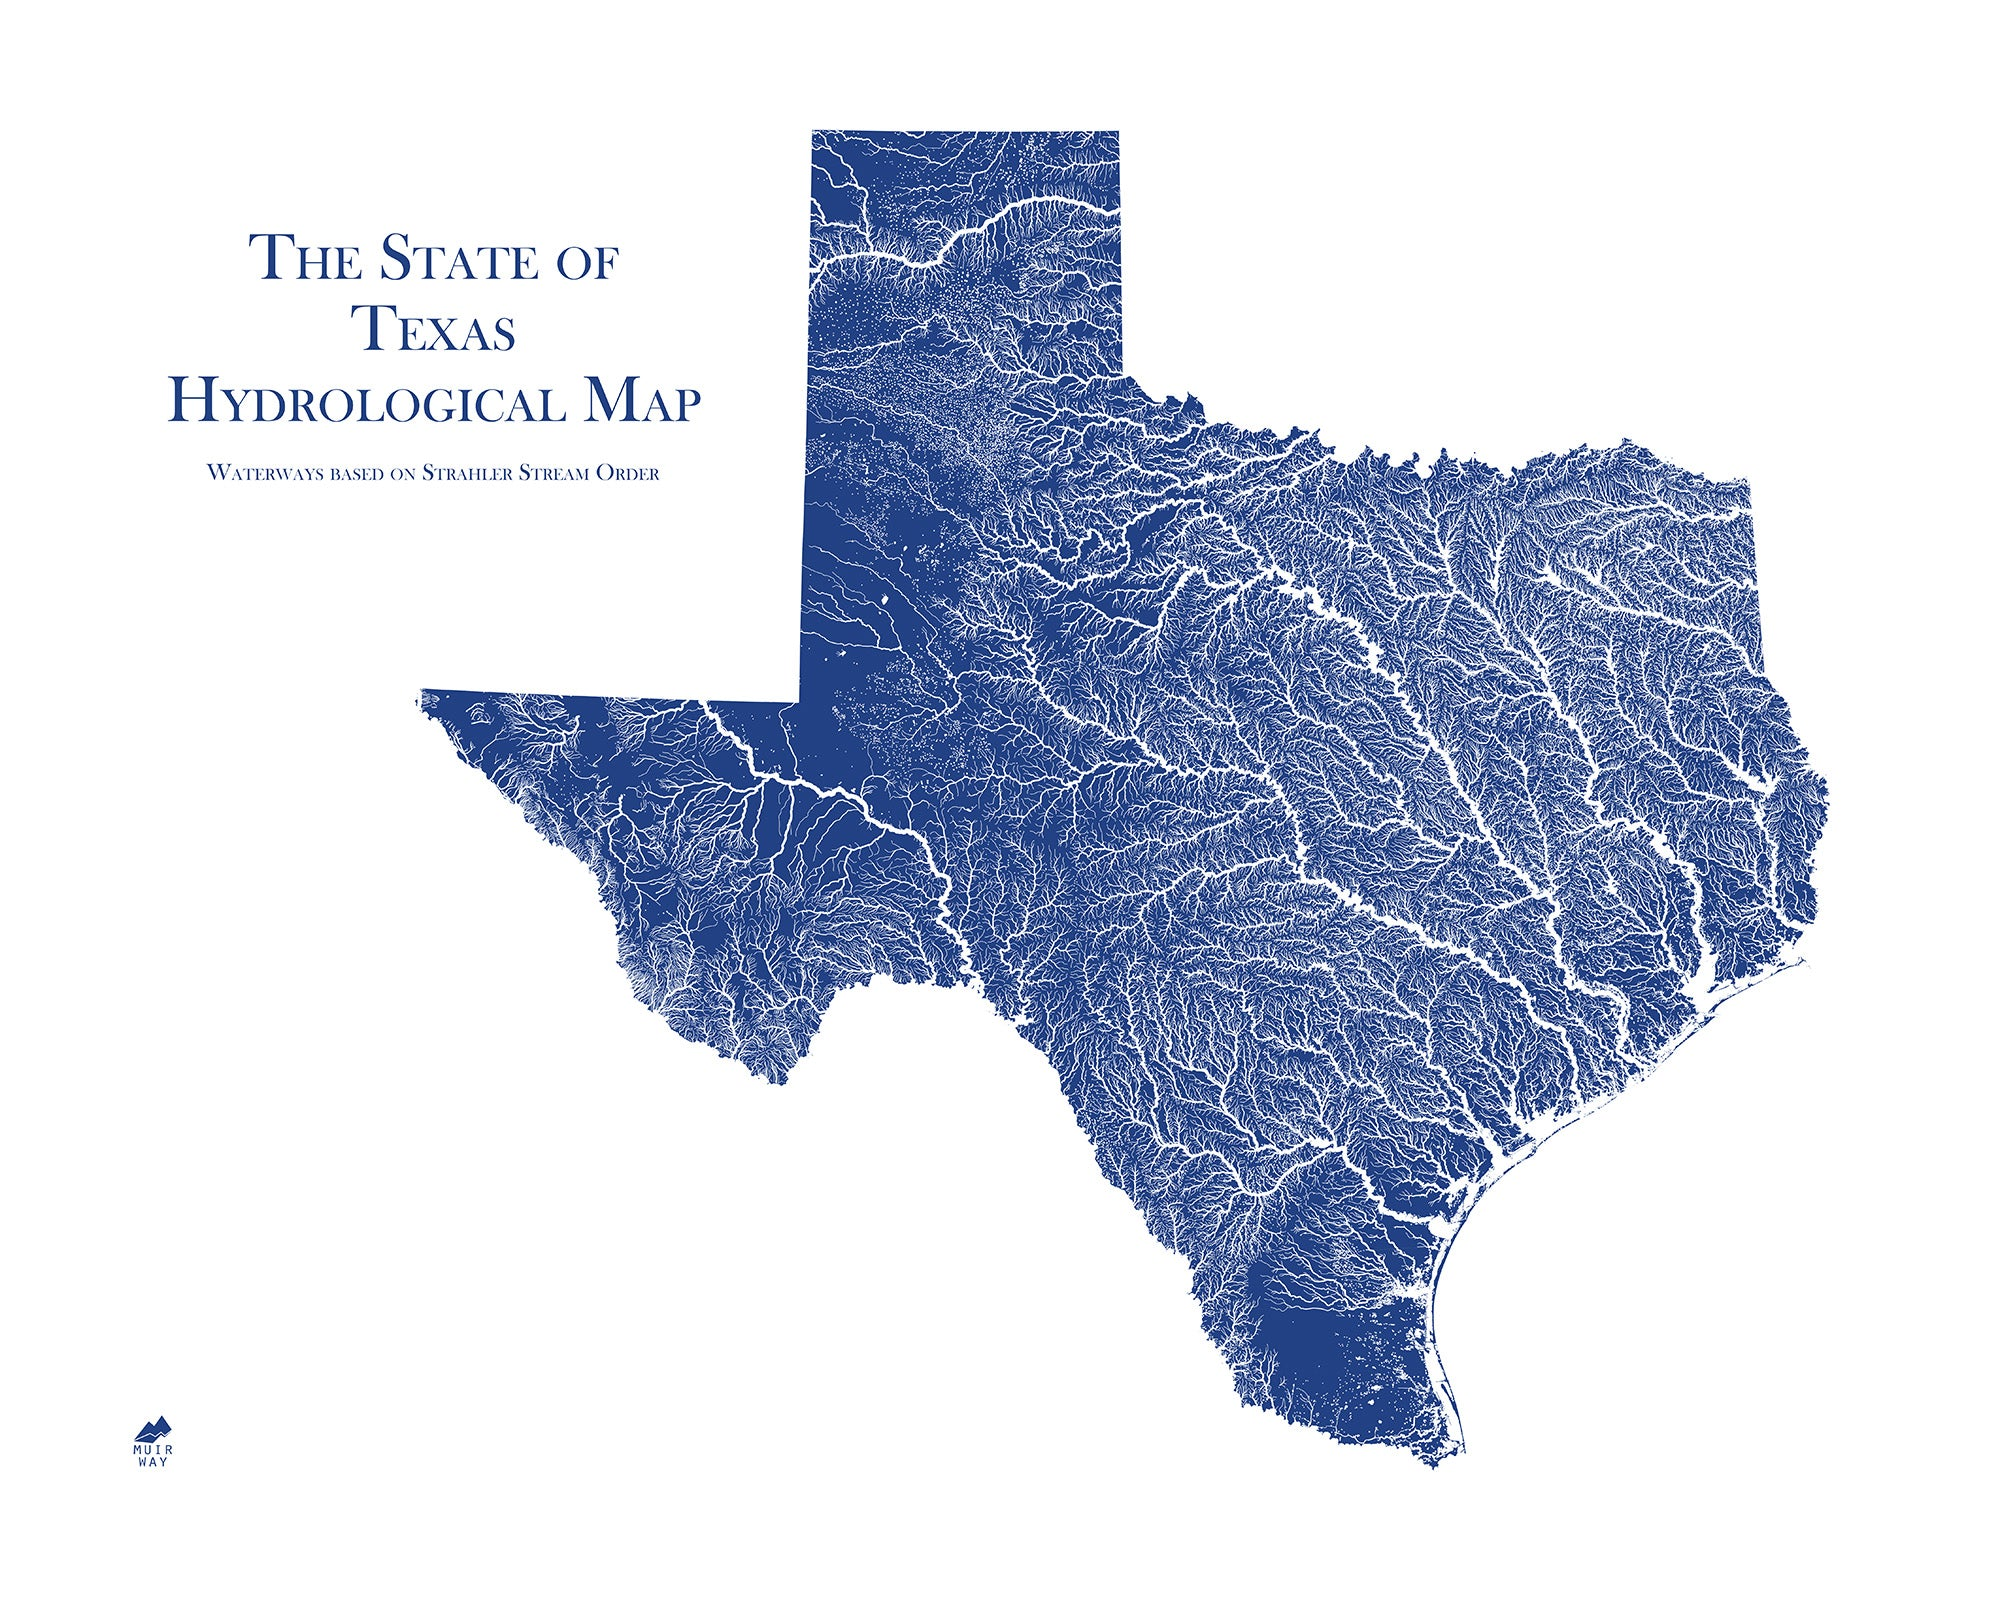 Texas Hydrology Series Map - Muir Way